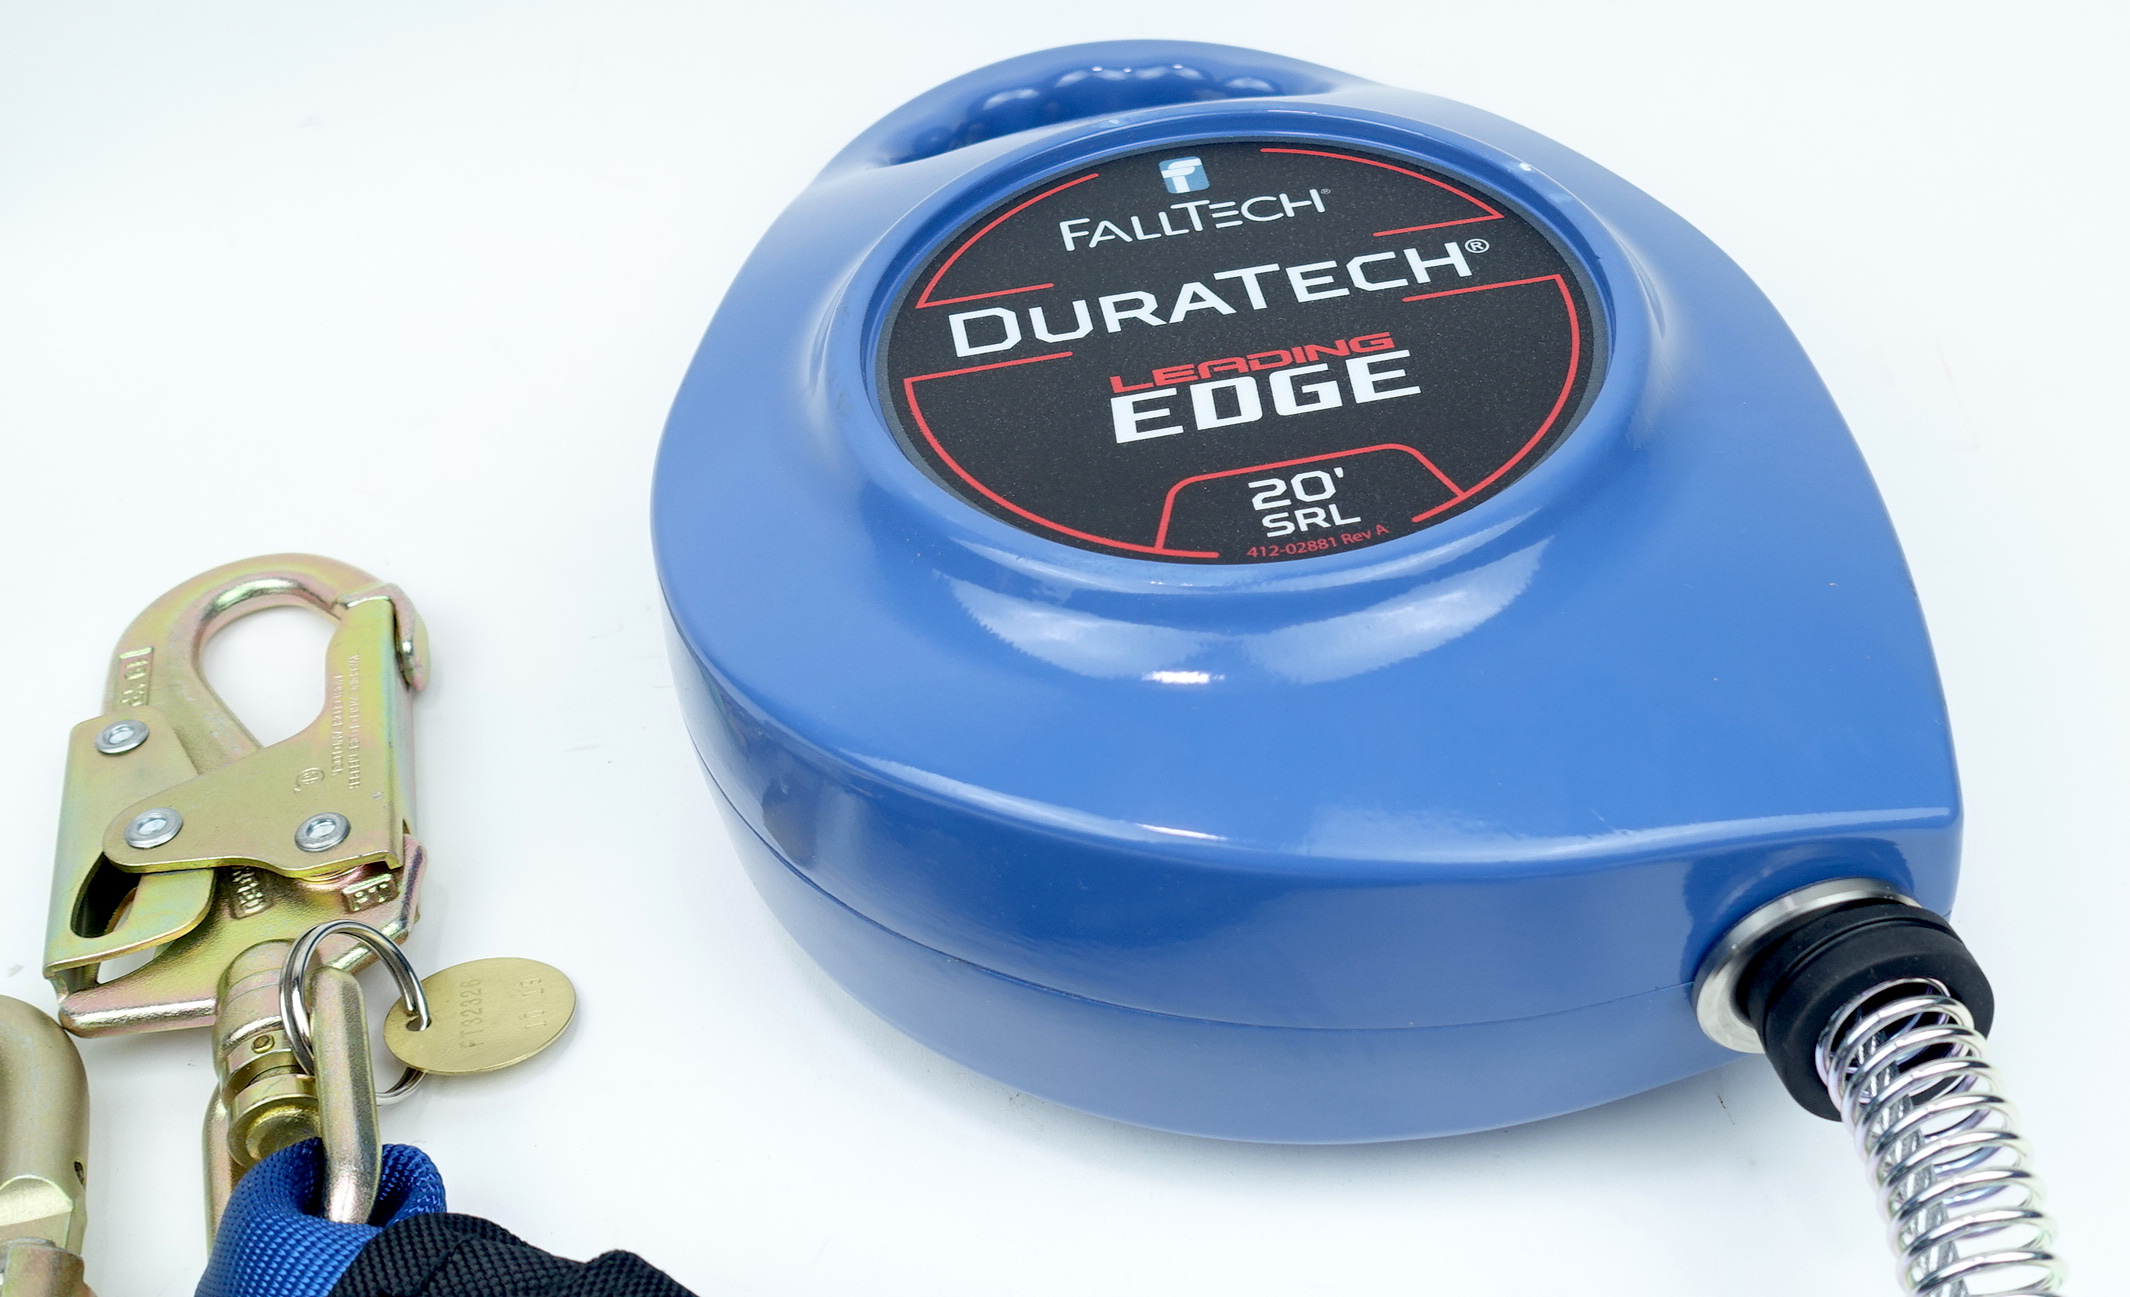 """FallTech 20' Leading Edge 7/32"""" Cable SRD DuraTech Steel Swivel Snaphook 7227CLE - image 9"""